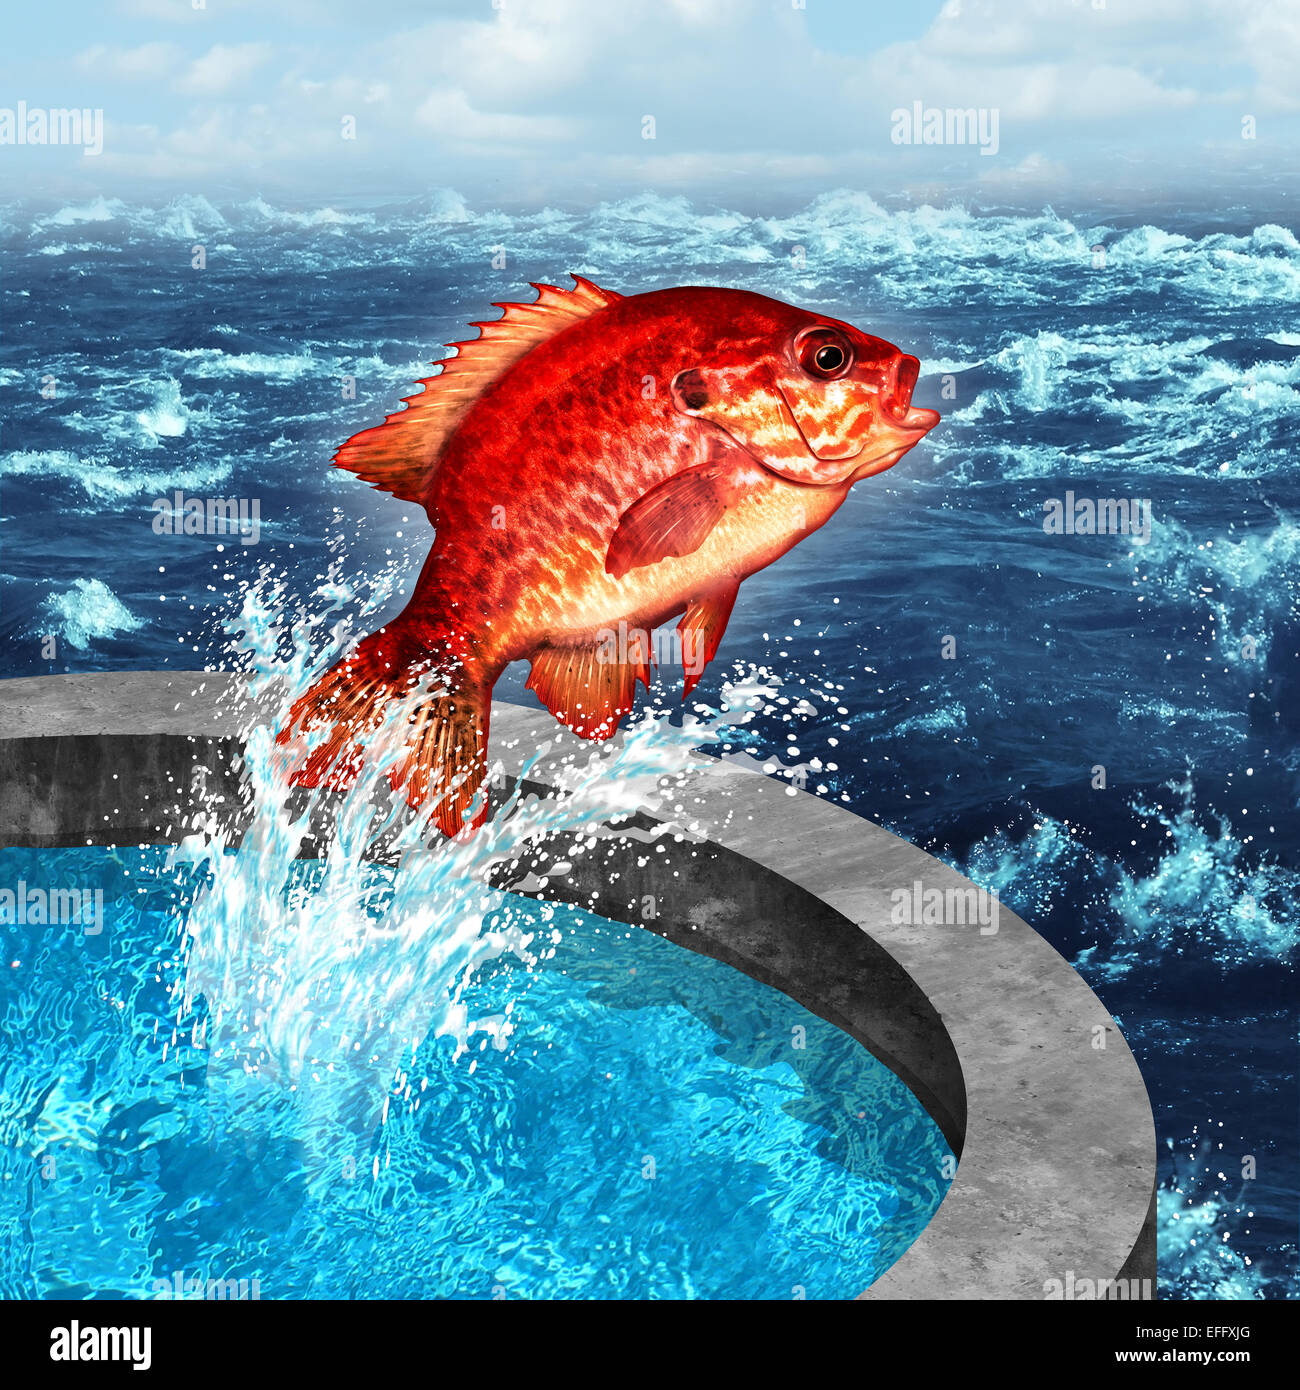 Courage concept and ambition symbol as a red fish jumping out of an artificial pool to join the natural blue ocean - Stock Image